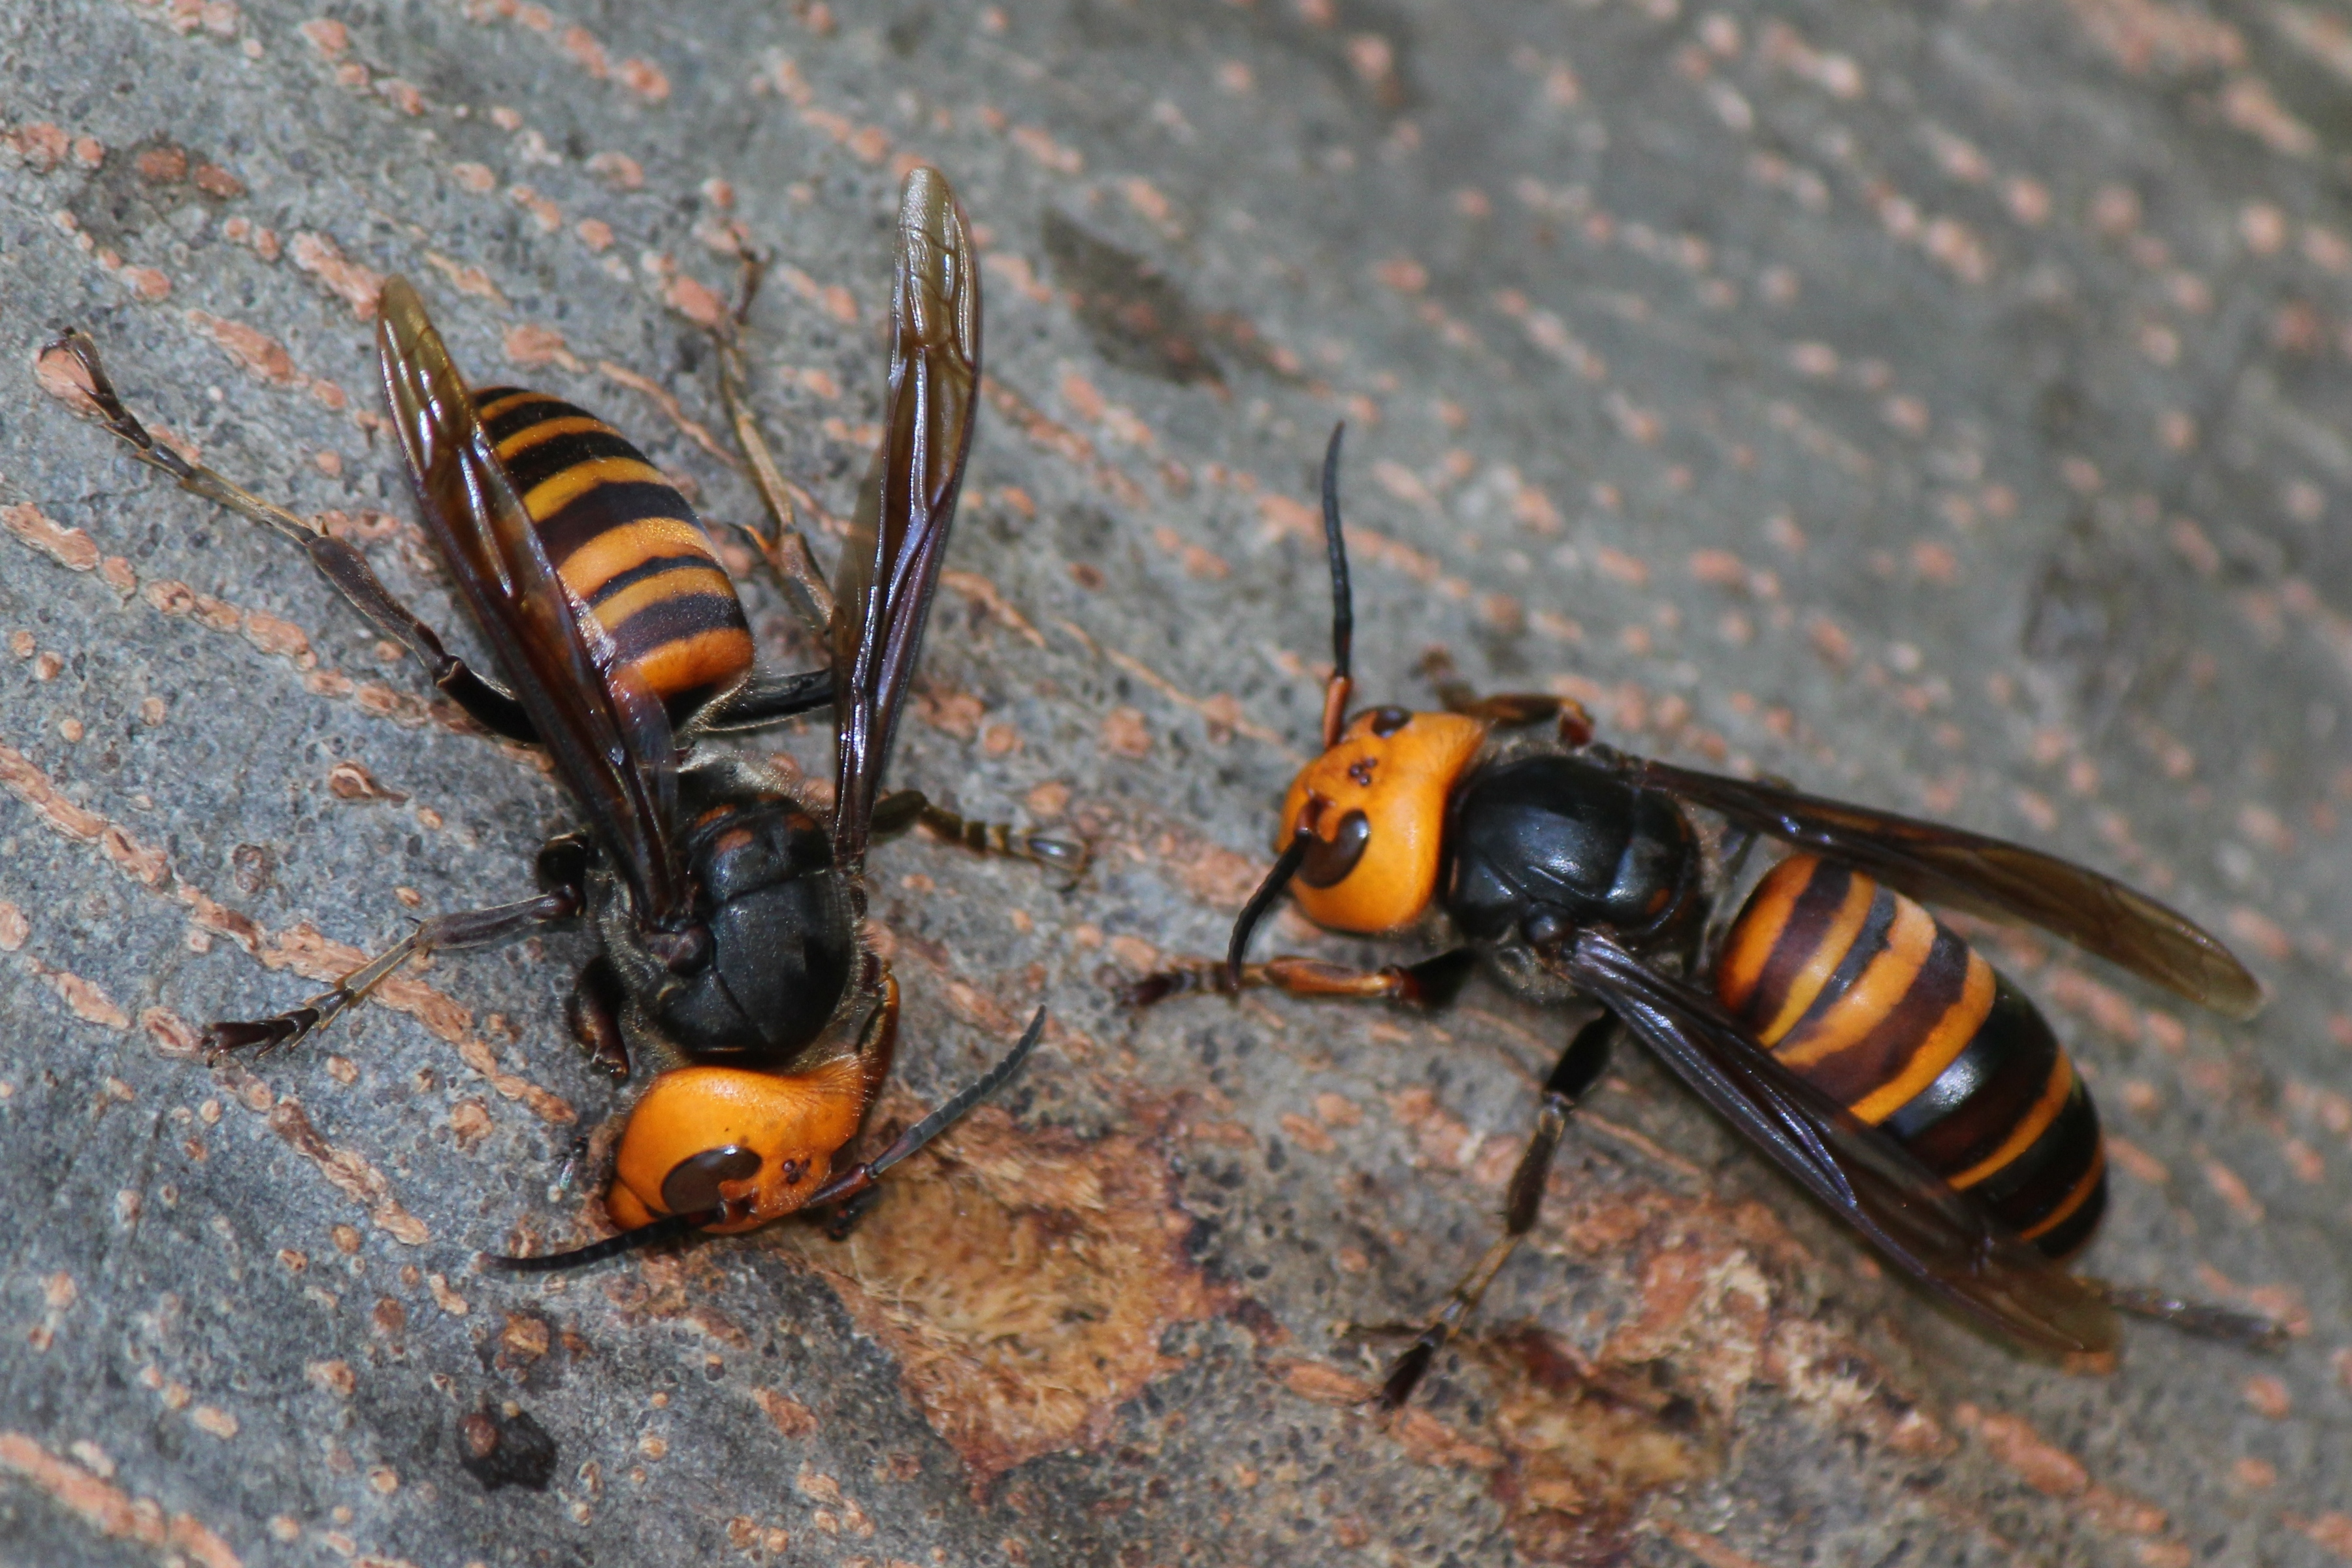 With orange and black stripes on its body and a bright orange face, the giant hornet is a formidable-looking wasp.